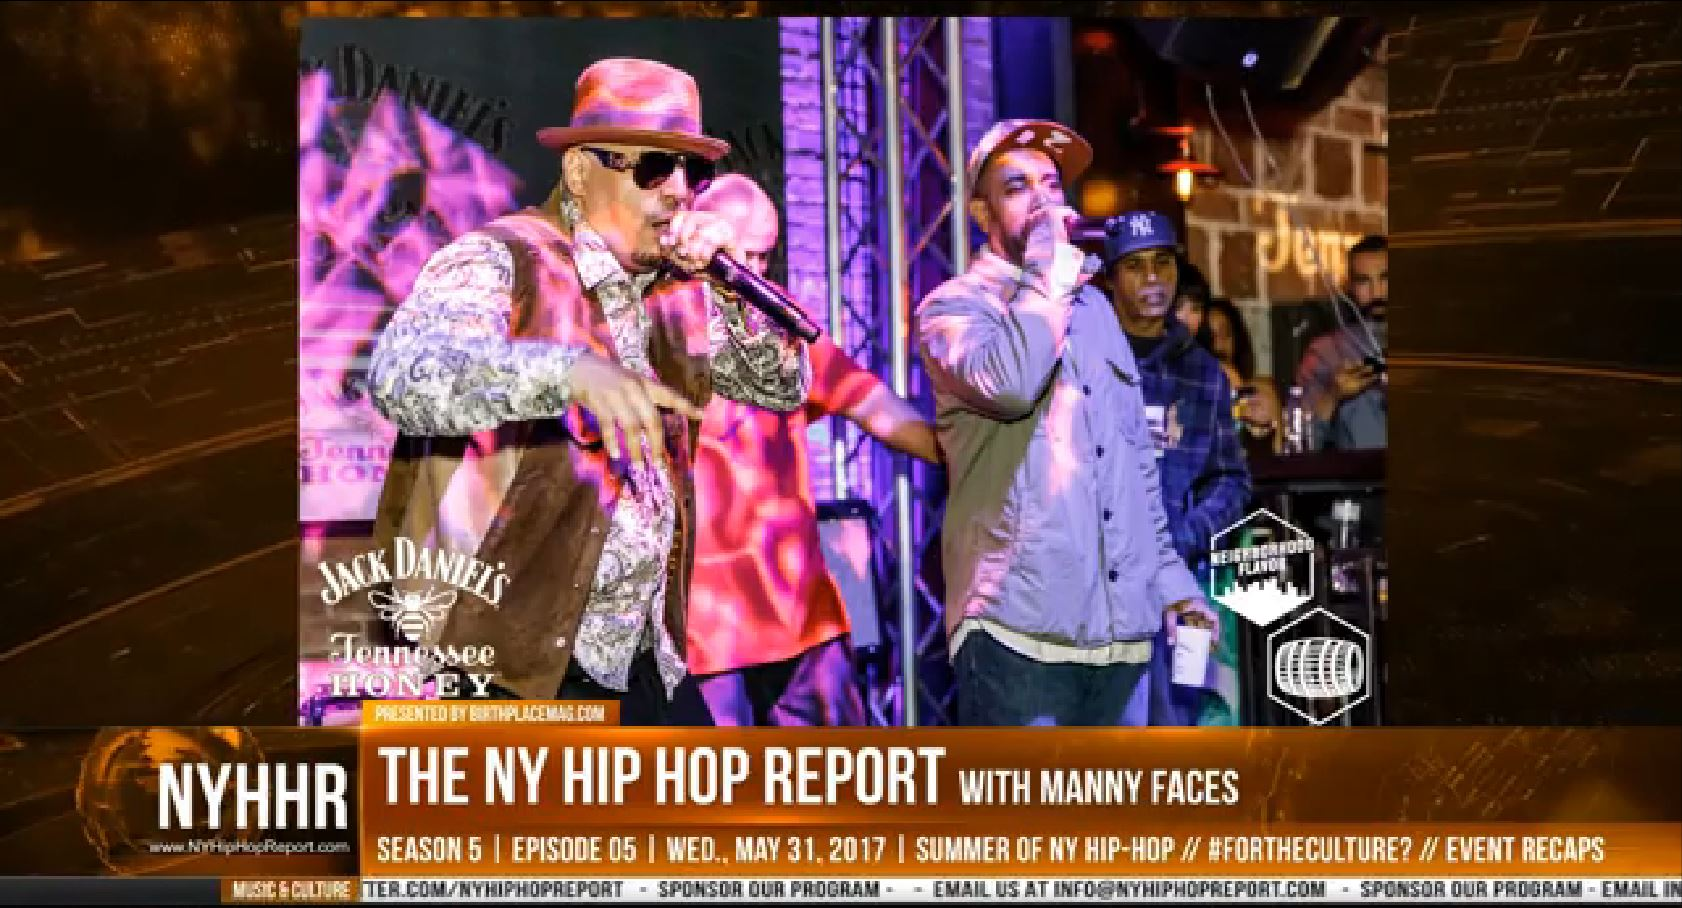 The NY Hip Hop Report - s05e05